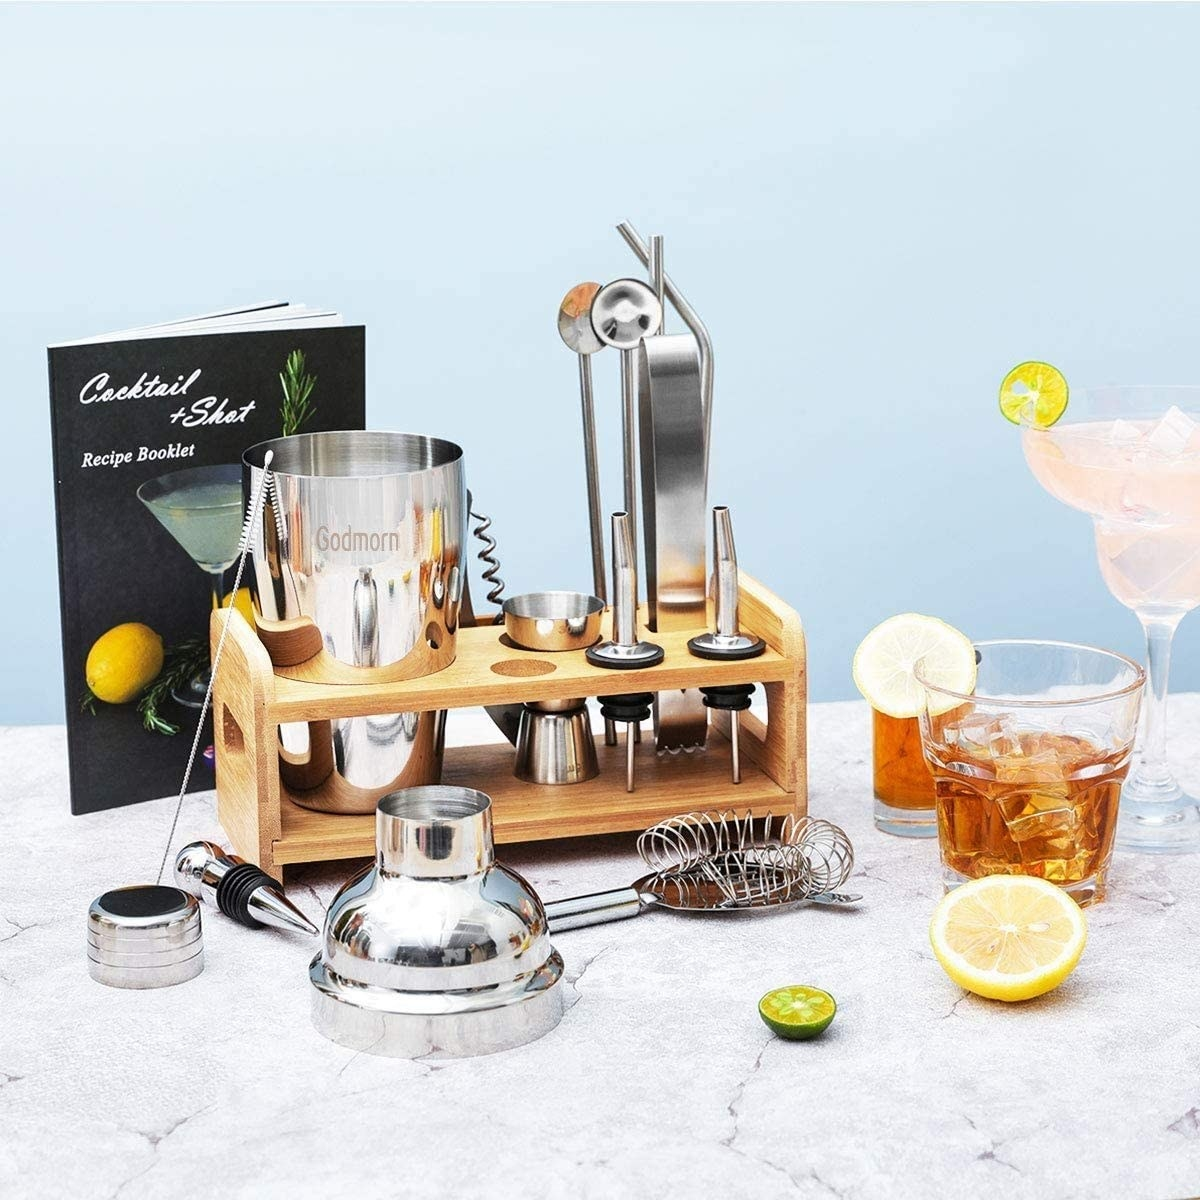 The bartending kit, stand, and several mixed drinks